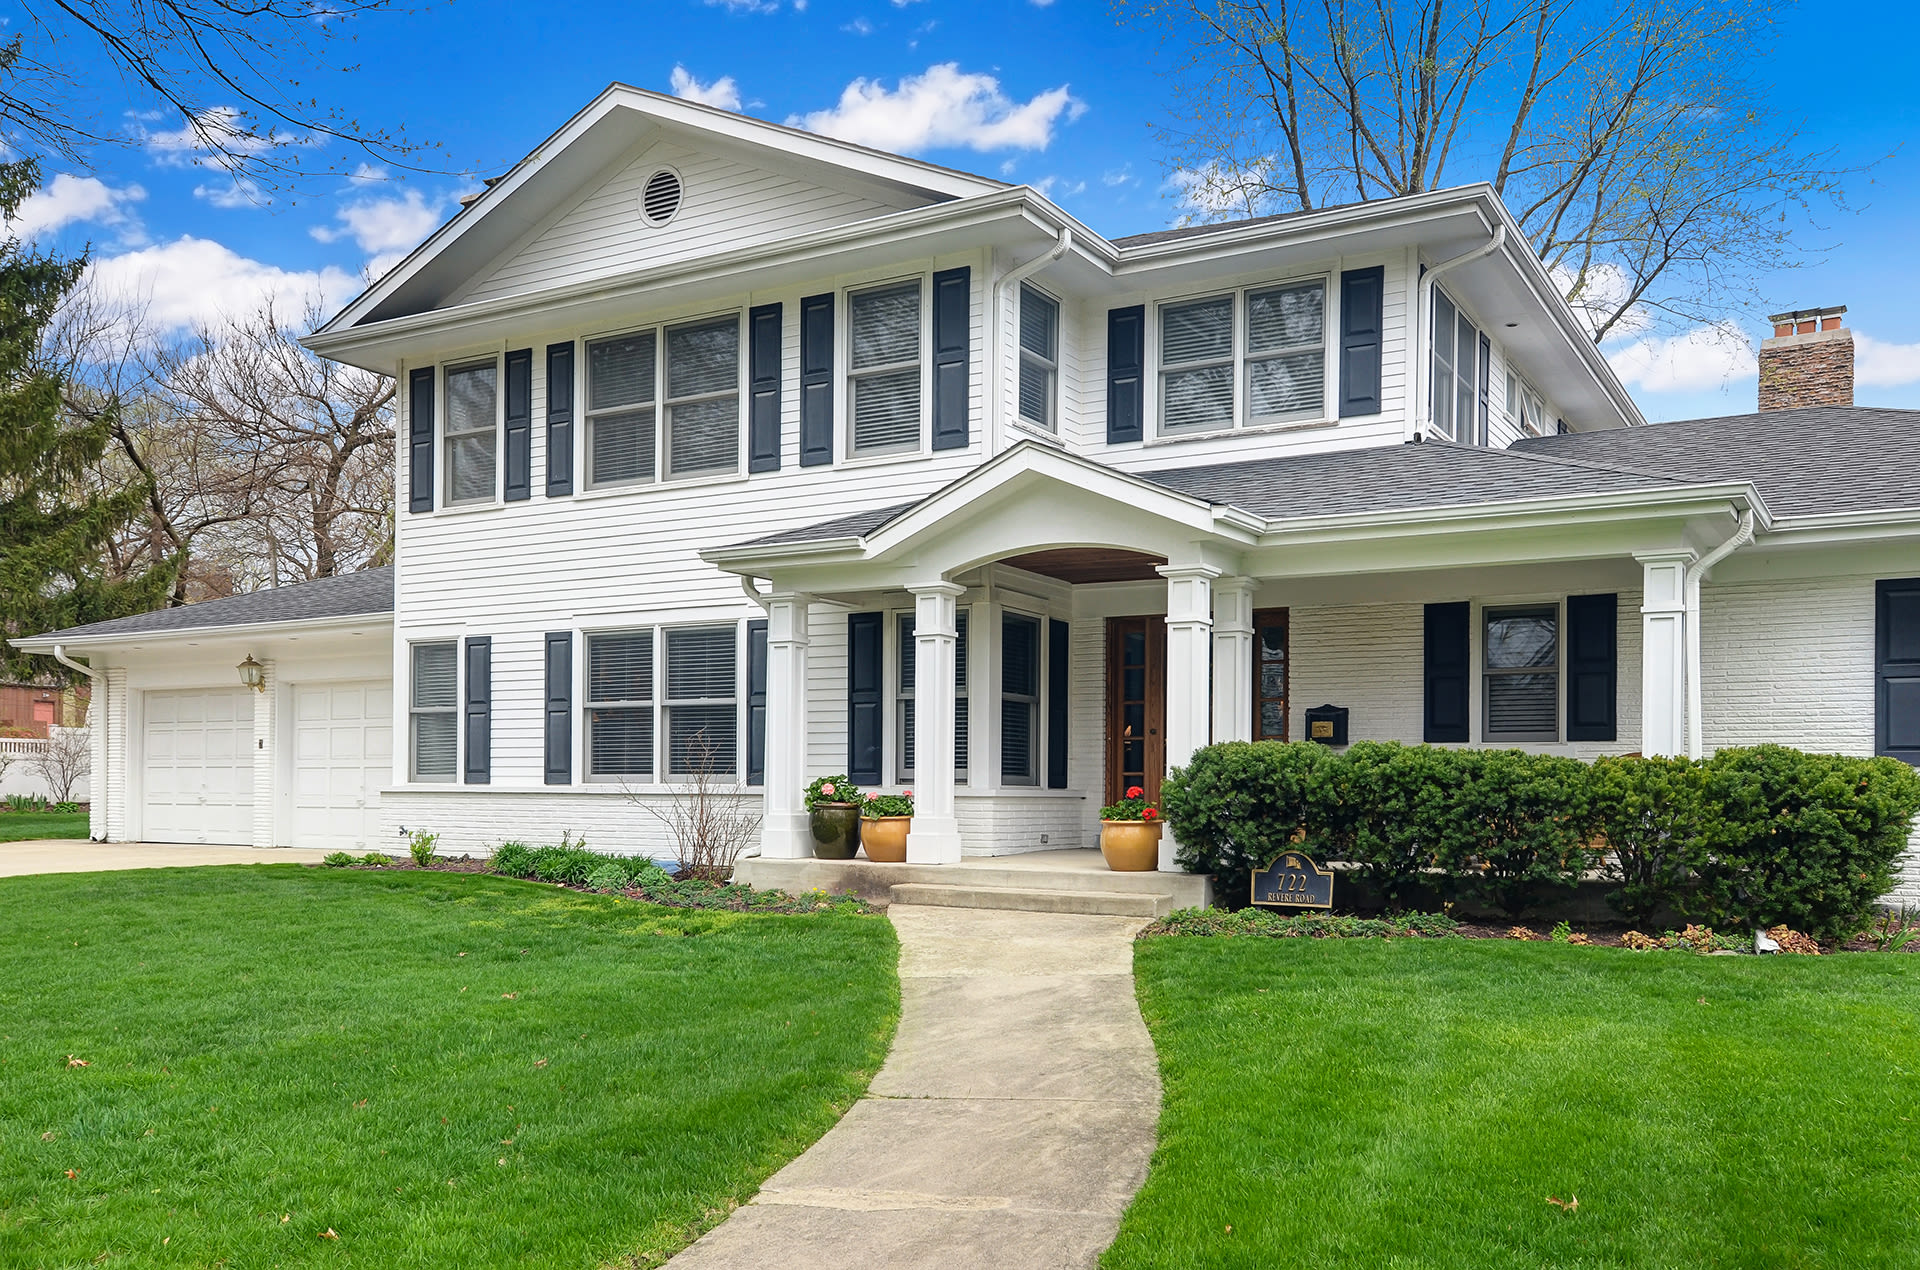 Home For Sale In Glen Ellyn, IL:  722 Revere Road, Glen Ellyn, IL